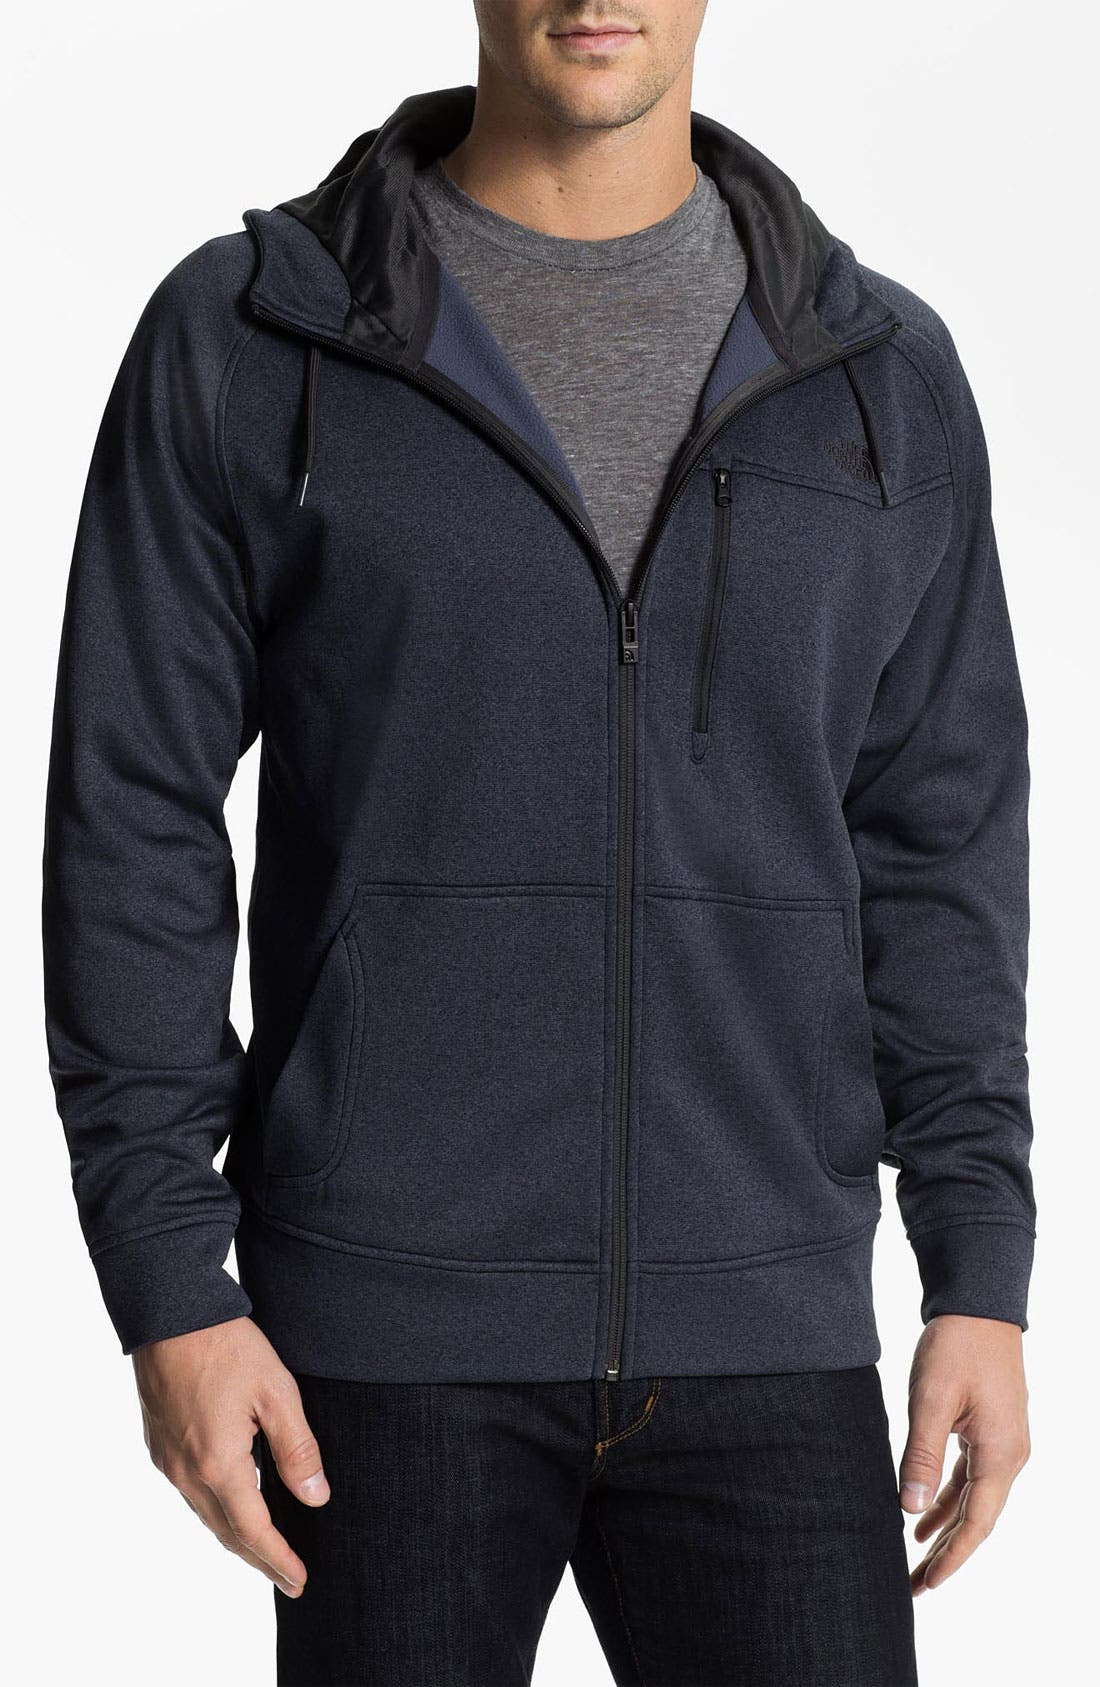 Alternate Image 1 Selected - The North Face 'McCracken' Fleece Hoodie